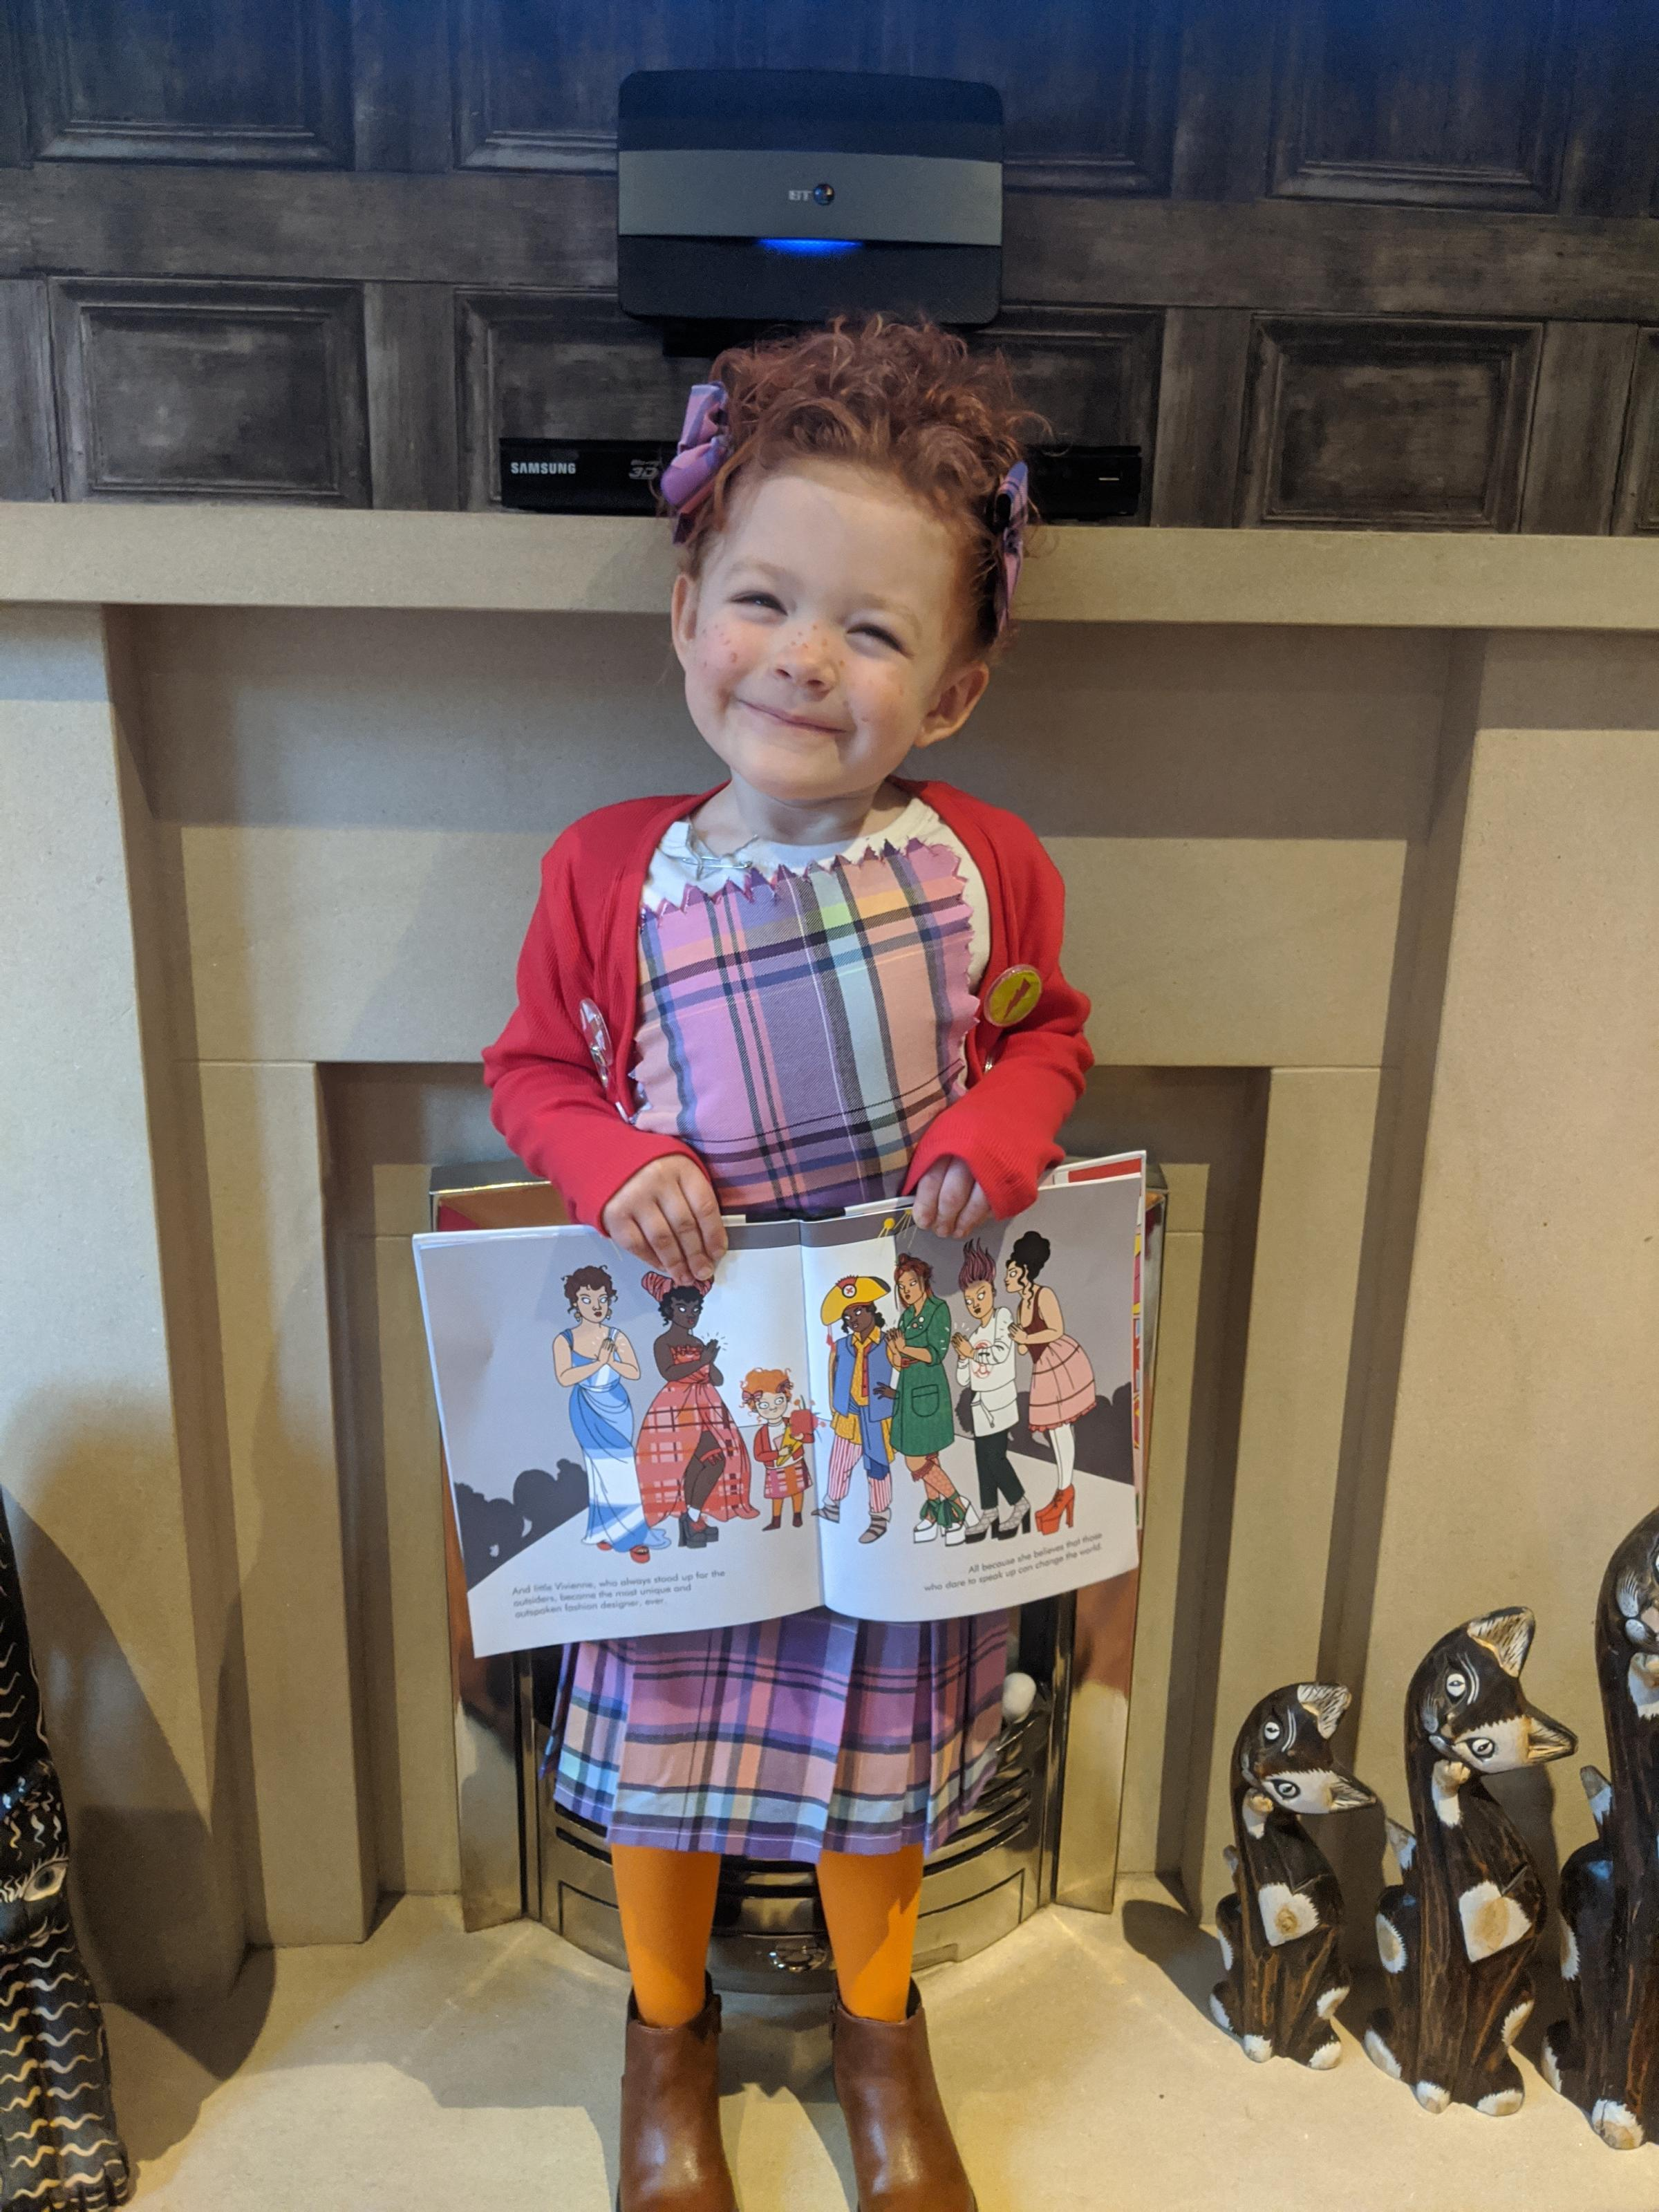 Droitwich Advertiser: Nancy Stokes- age 5 ,was pleased her picture has been seen by the author and the illustrator of her book on Instagram